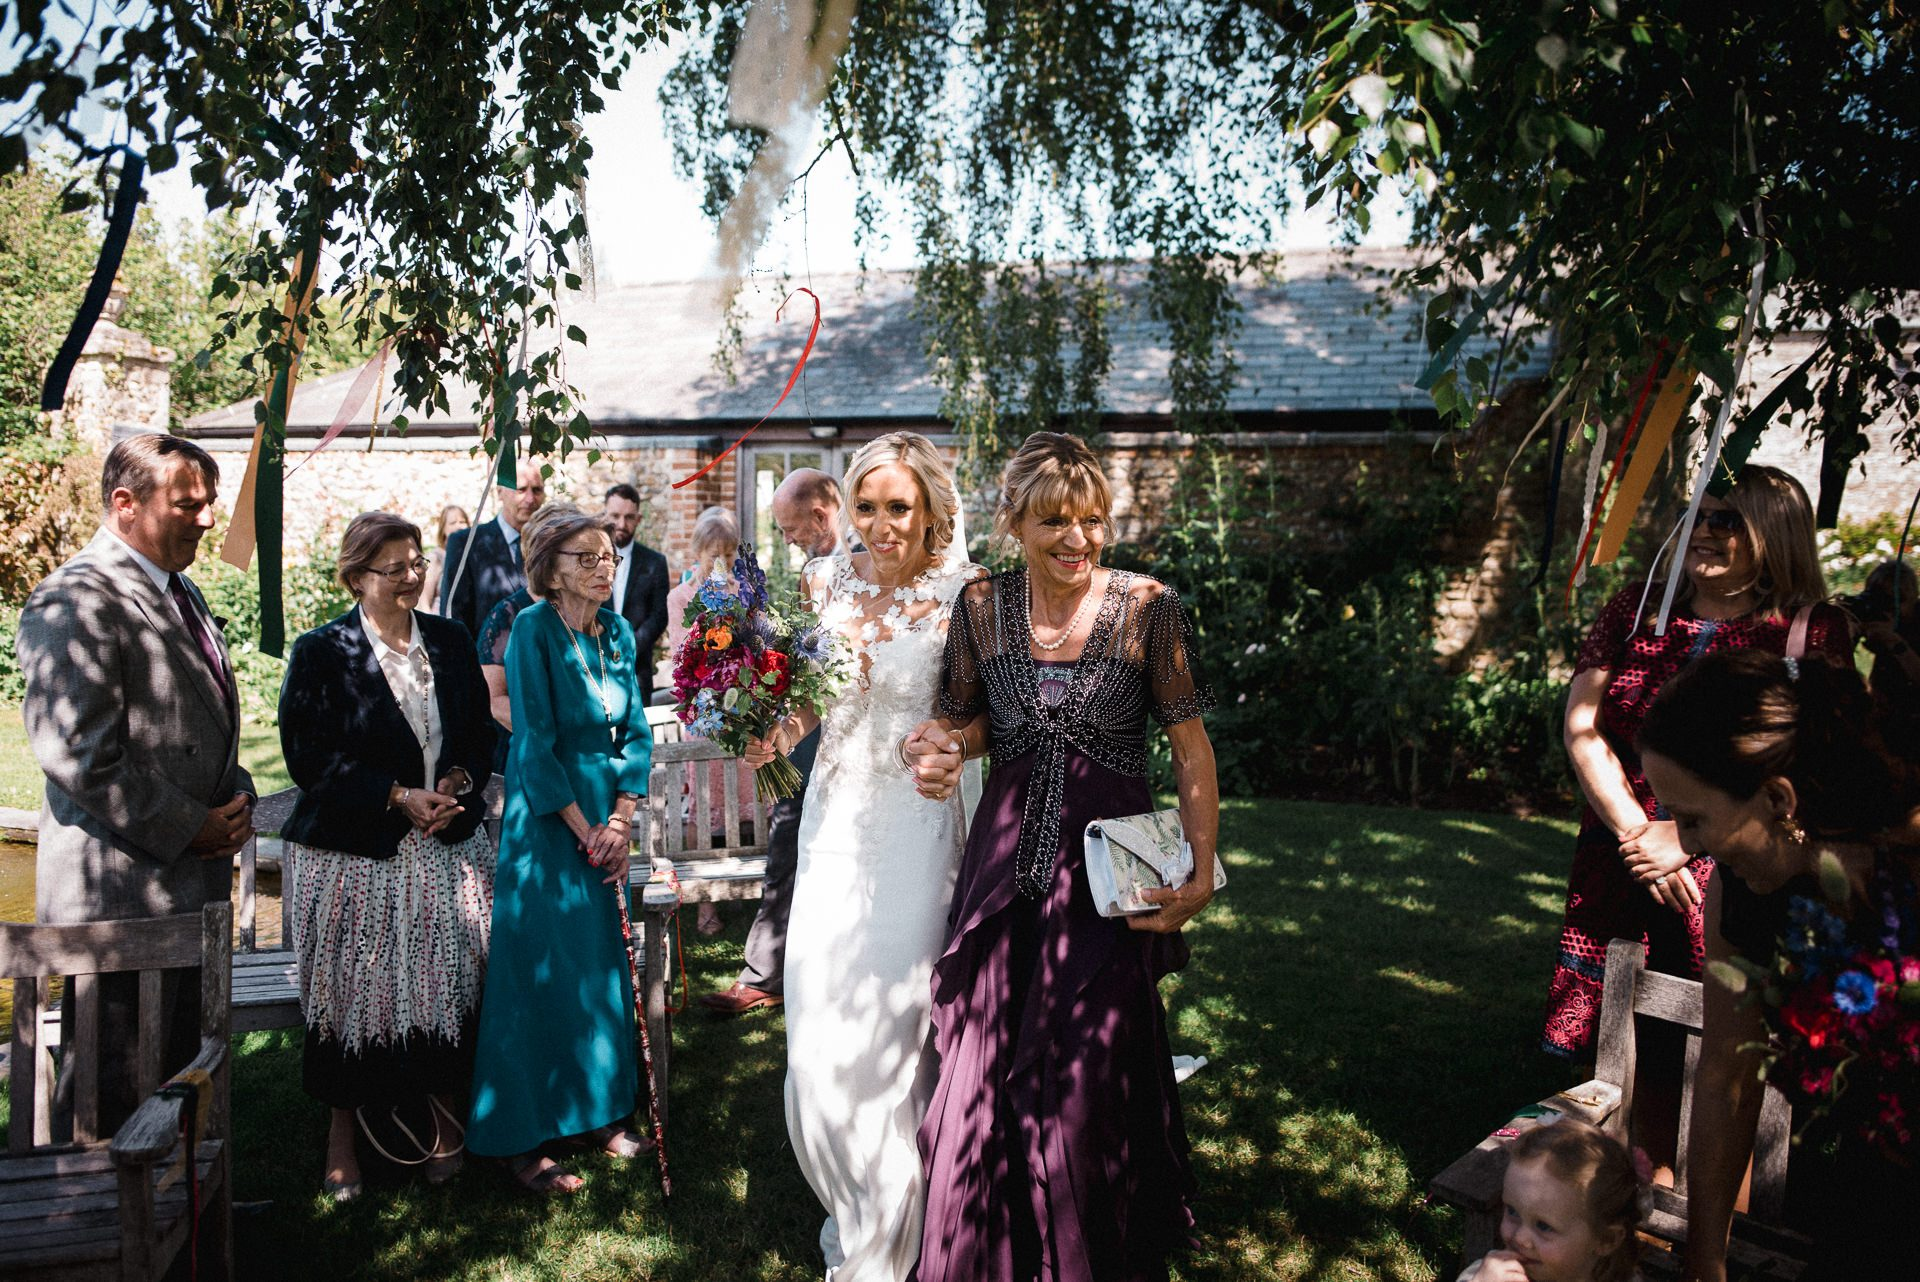 0082-DEVON-SOMERSET-WEDDING-PHOTOGRAPHER-0350-BEST-OF-2019-LOUISE-MAY-DEVON-SOMERSET-WEDDING-PHOTOGRAPHY-_WWP8689